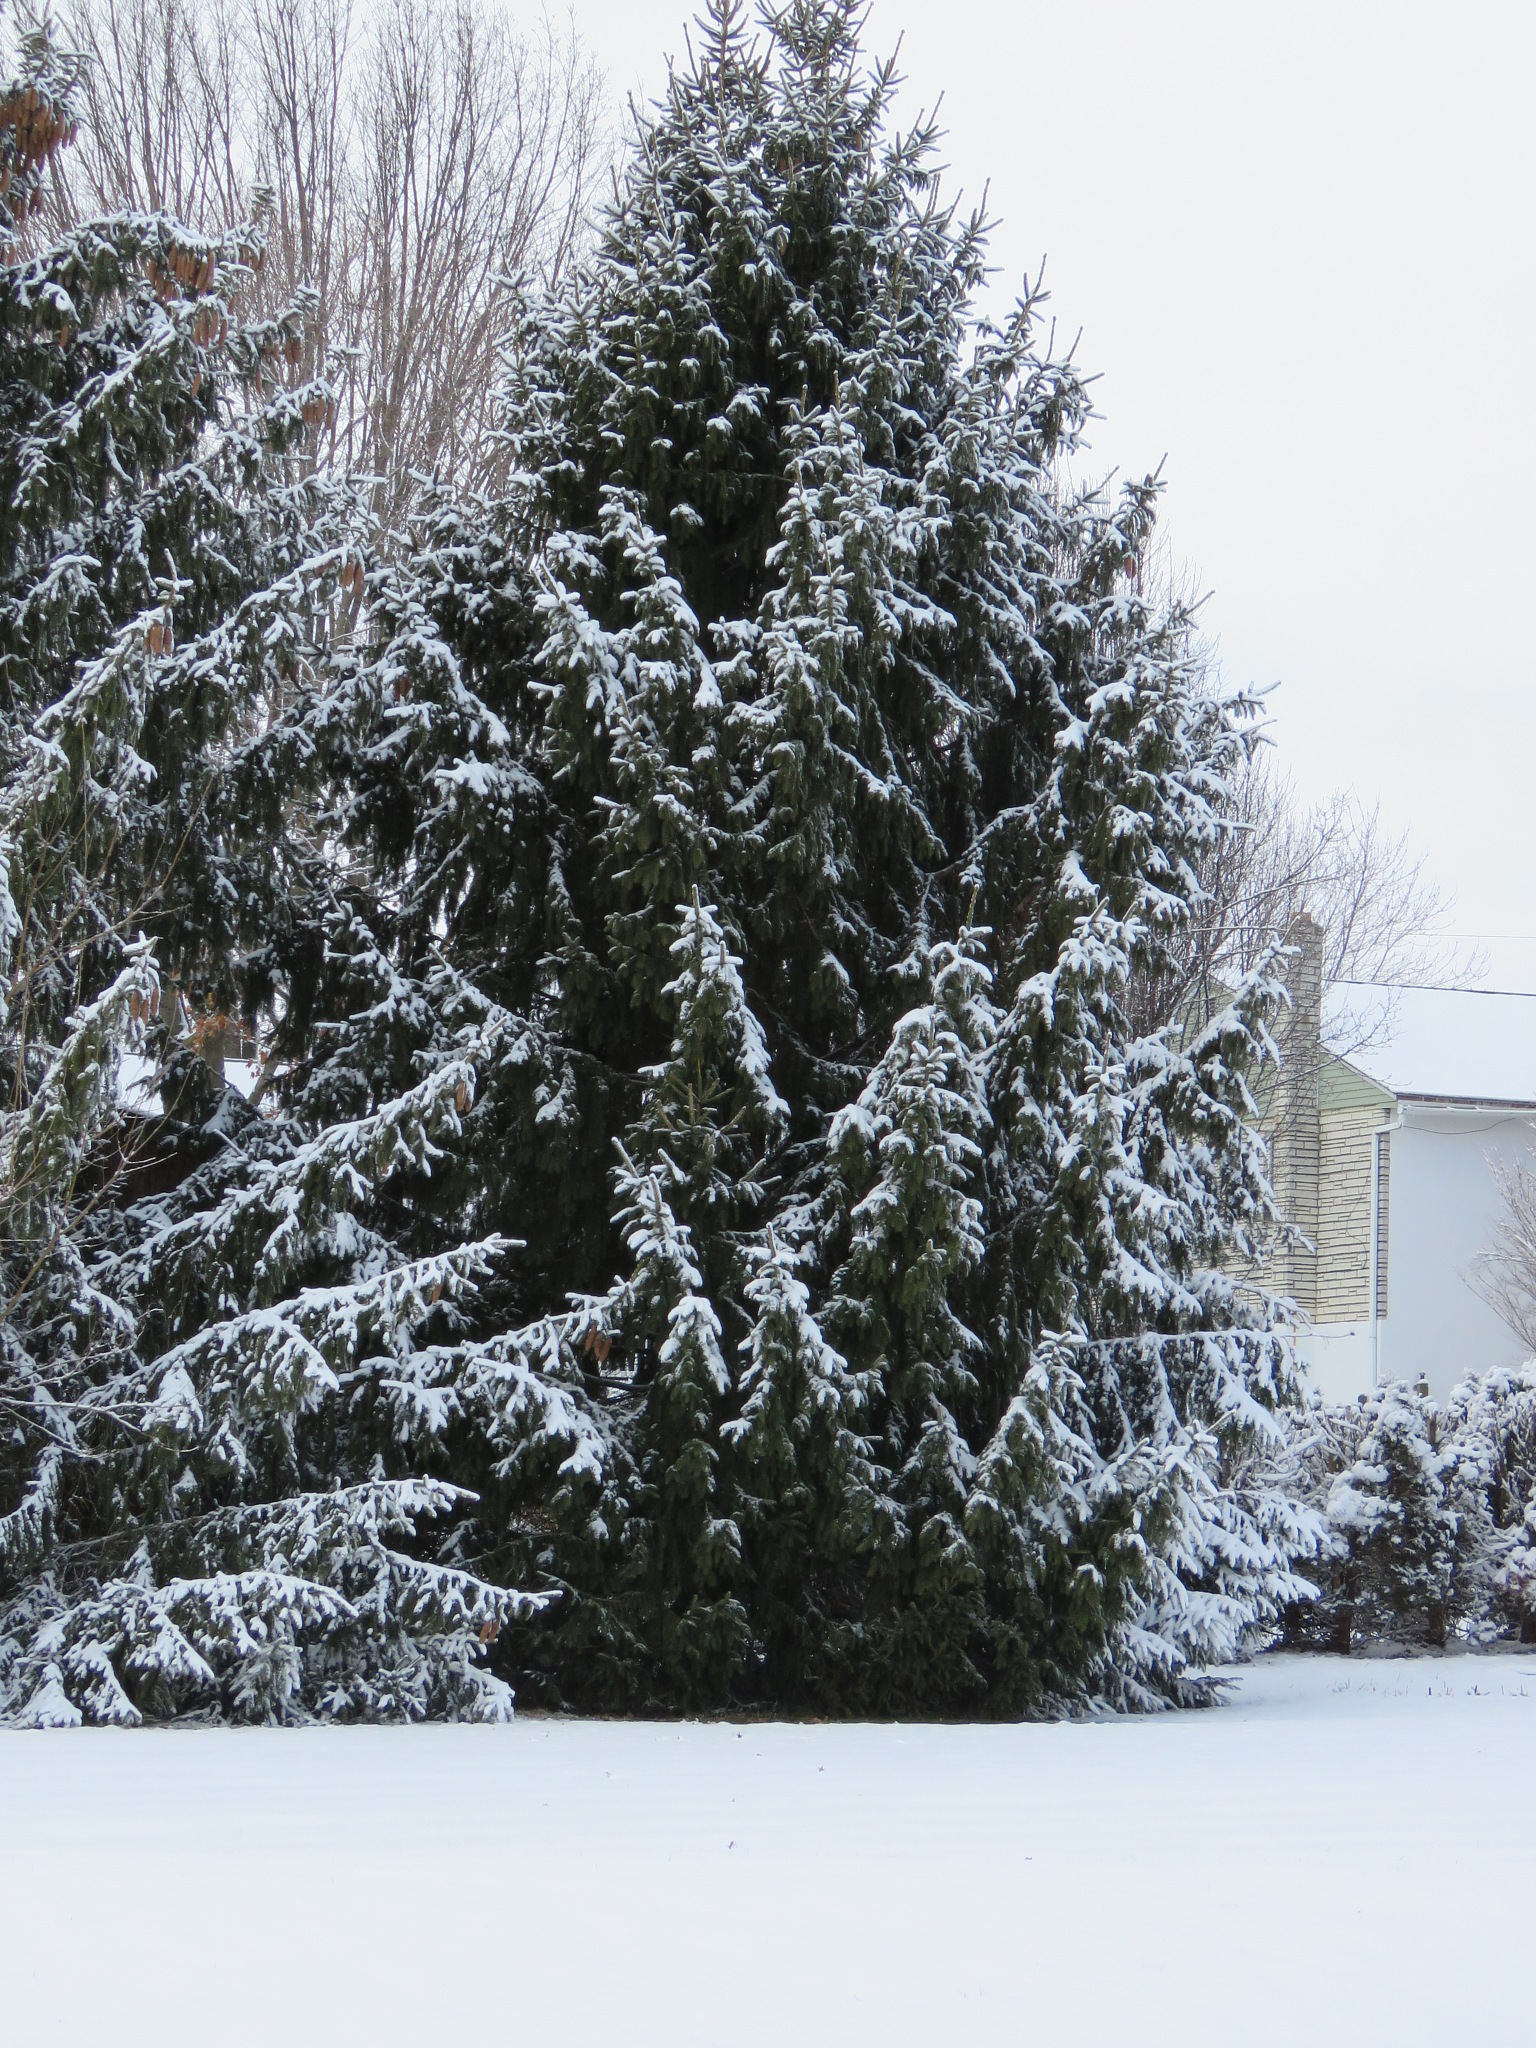 Snow Covered Pine Trees by janet.fisher.503